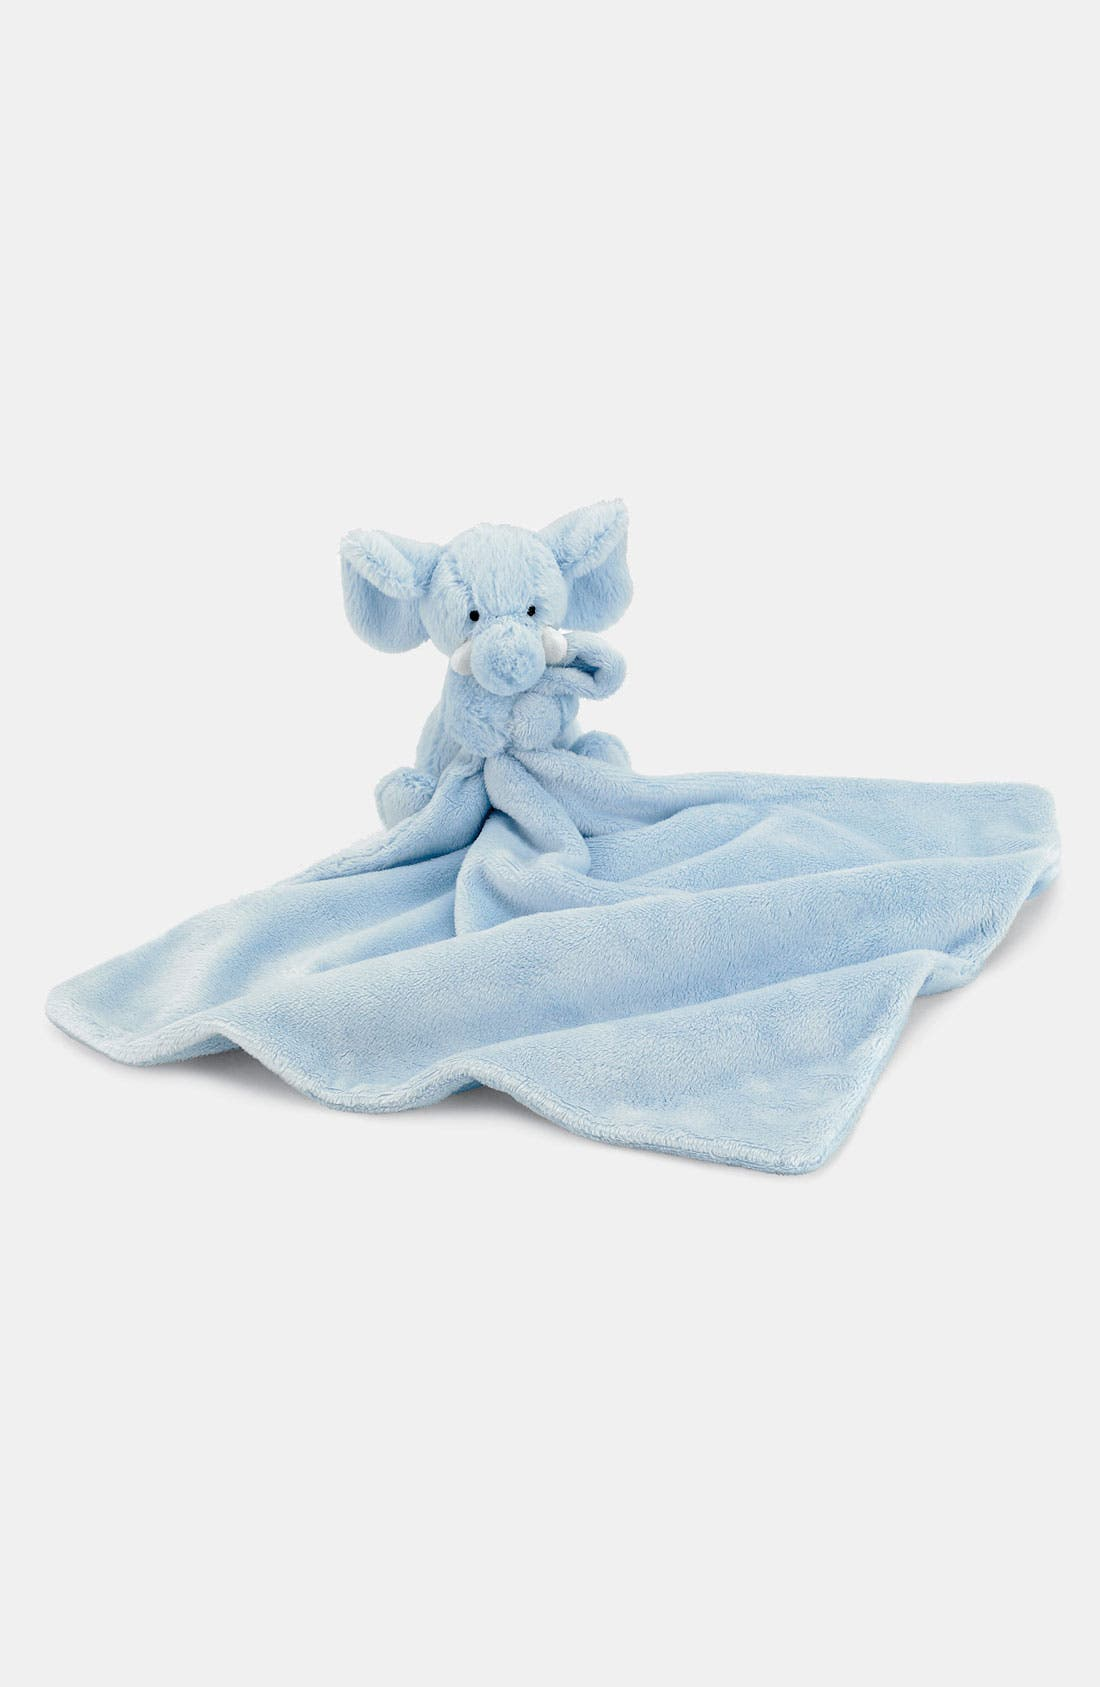 Main Image - Jellycat 'Elephant Soother' Blanket